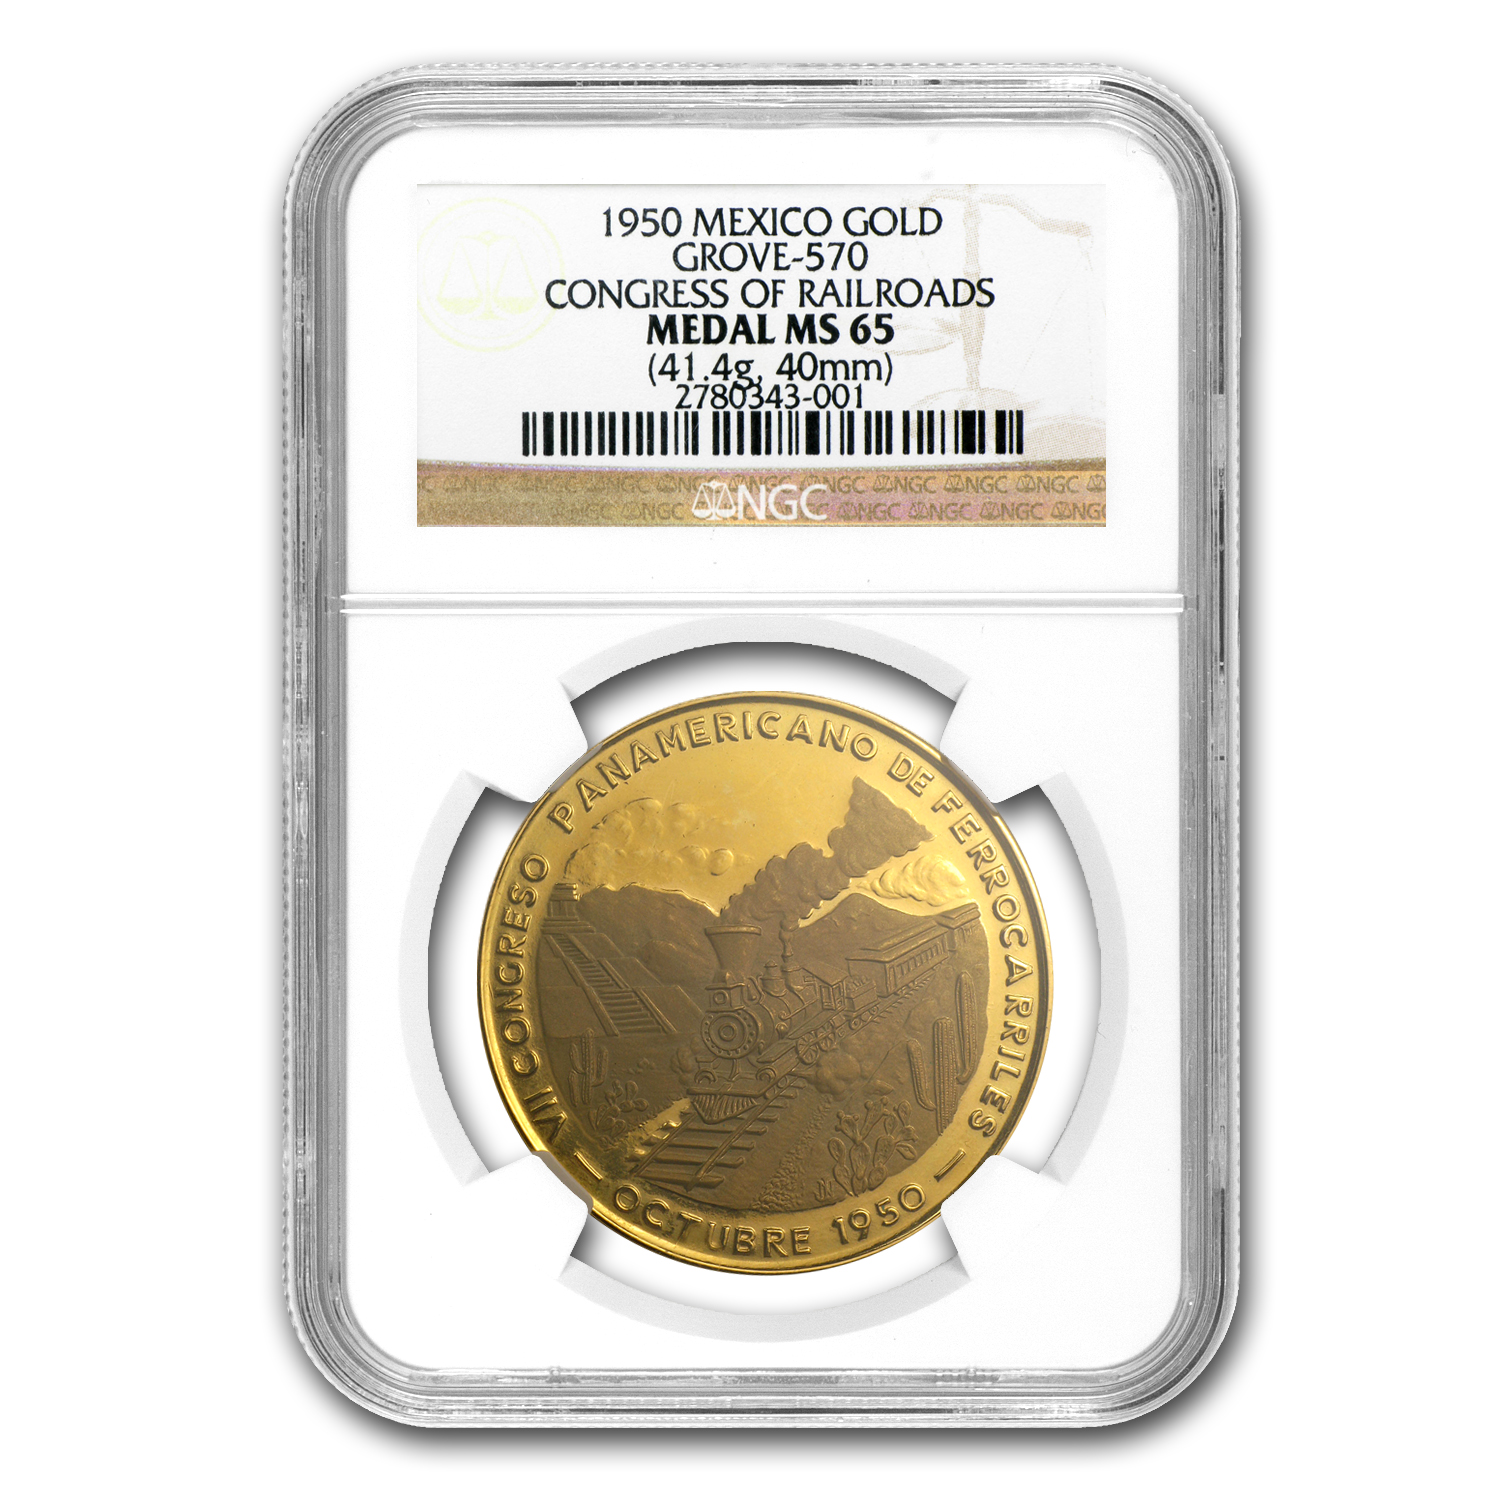 1950 Mexico Gold Congress of Railroads Medal MS-65 NGC